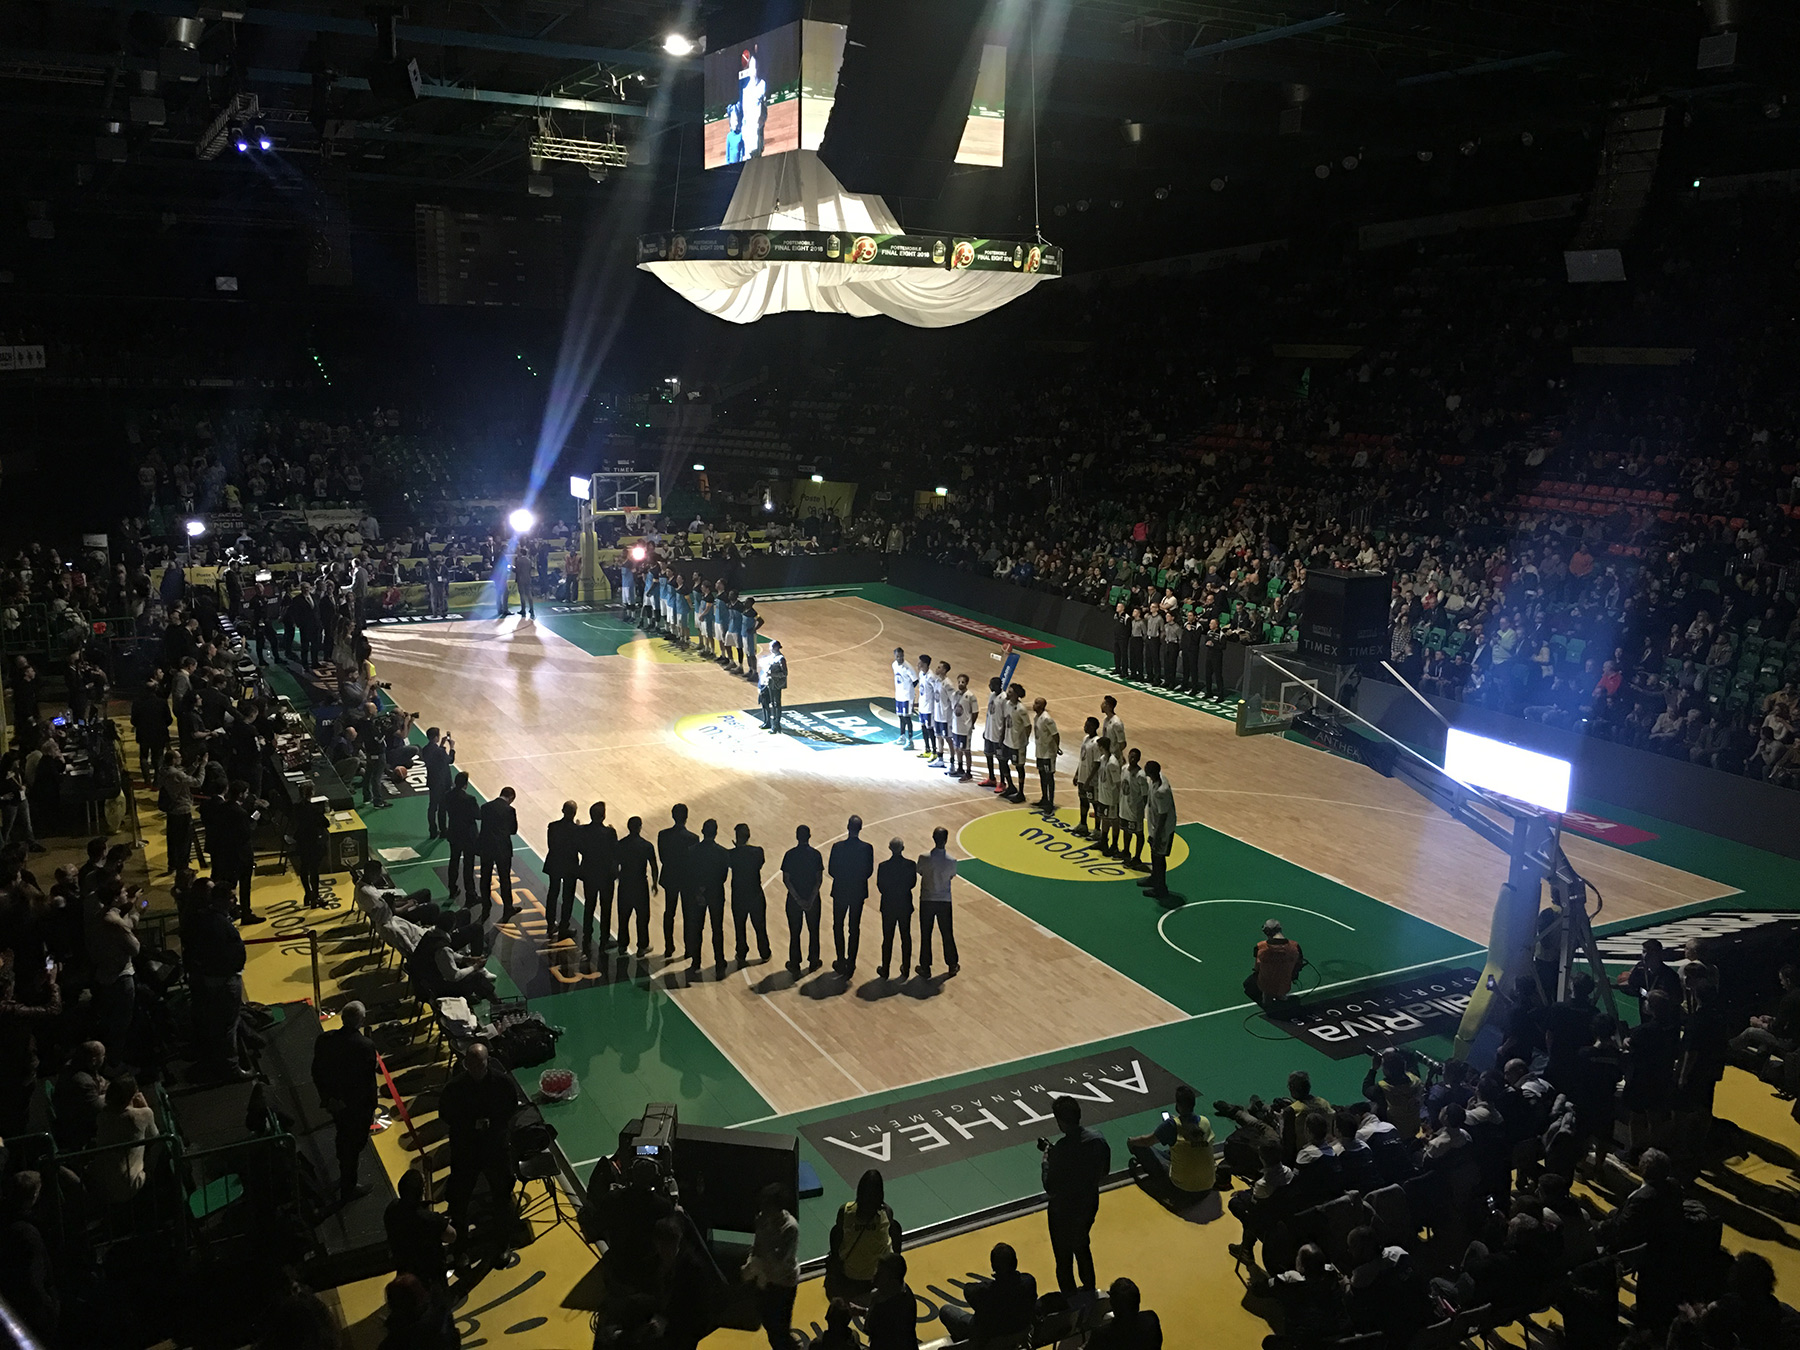 The show of the 2018 Italian Cup Final Eight